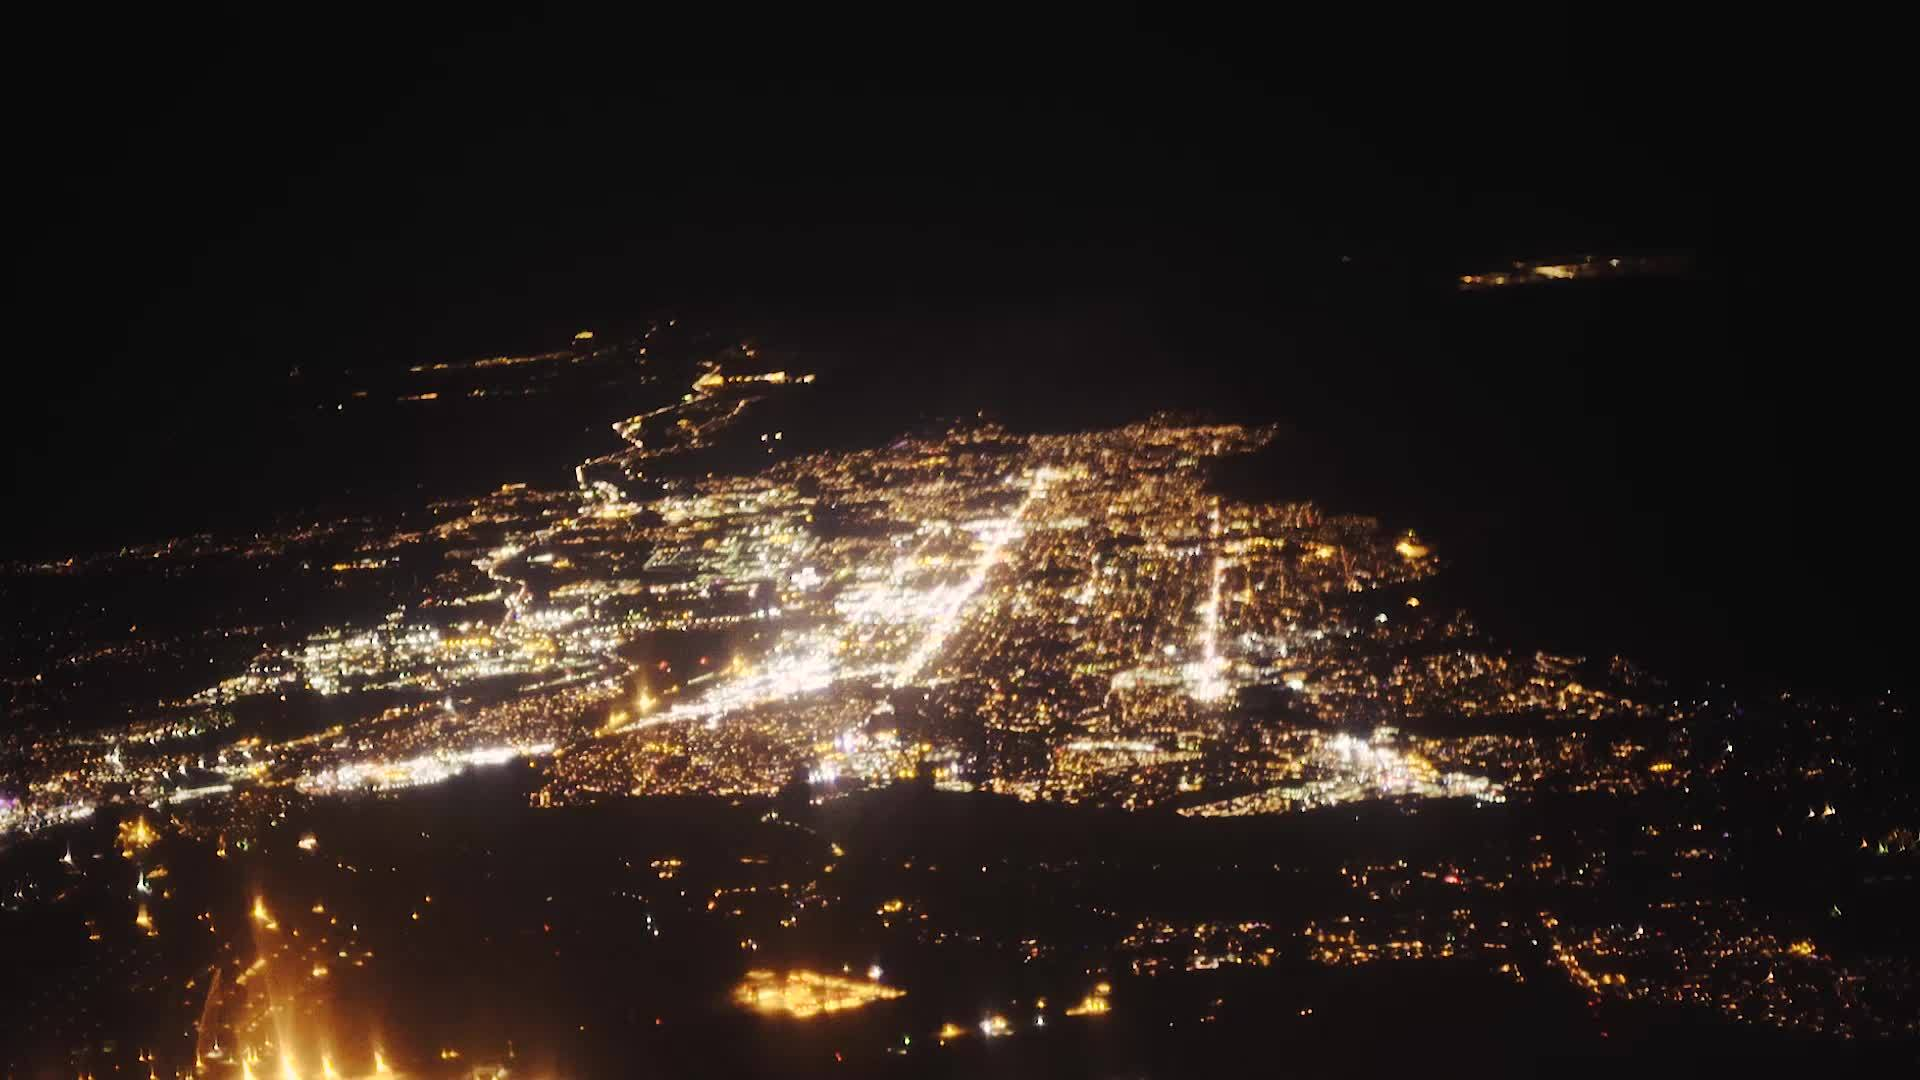 Colorado, gifs, Colorado Bliss GIFs